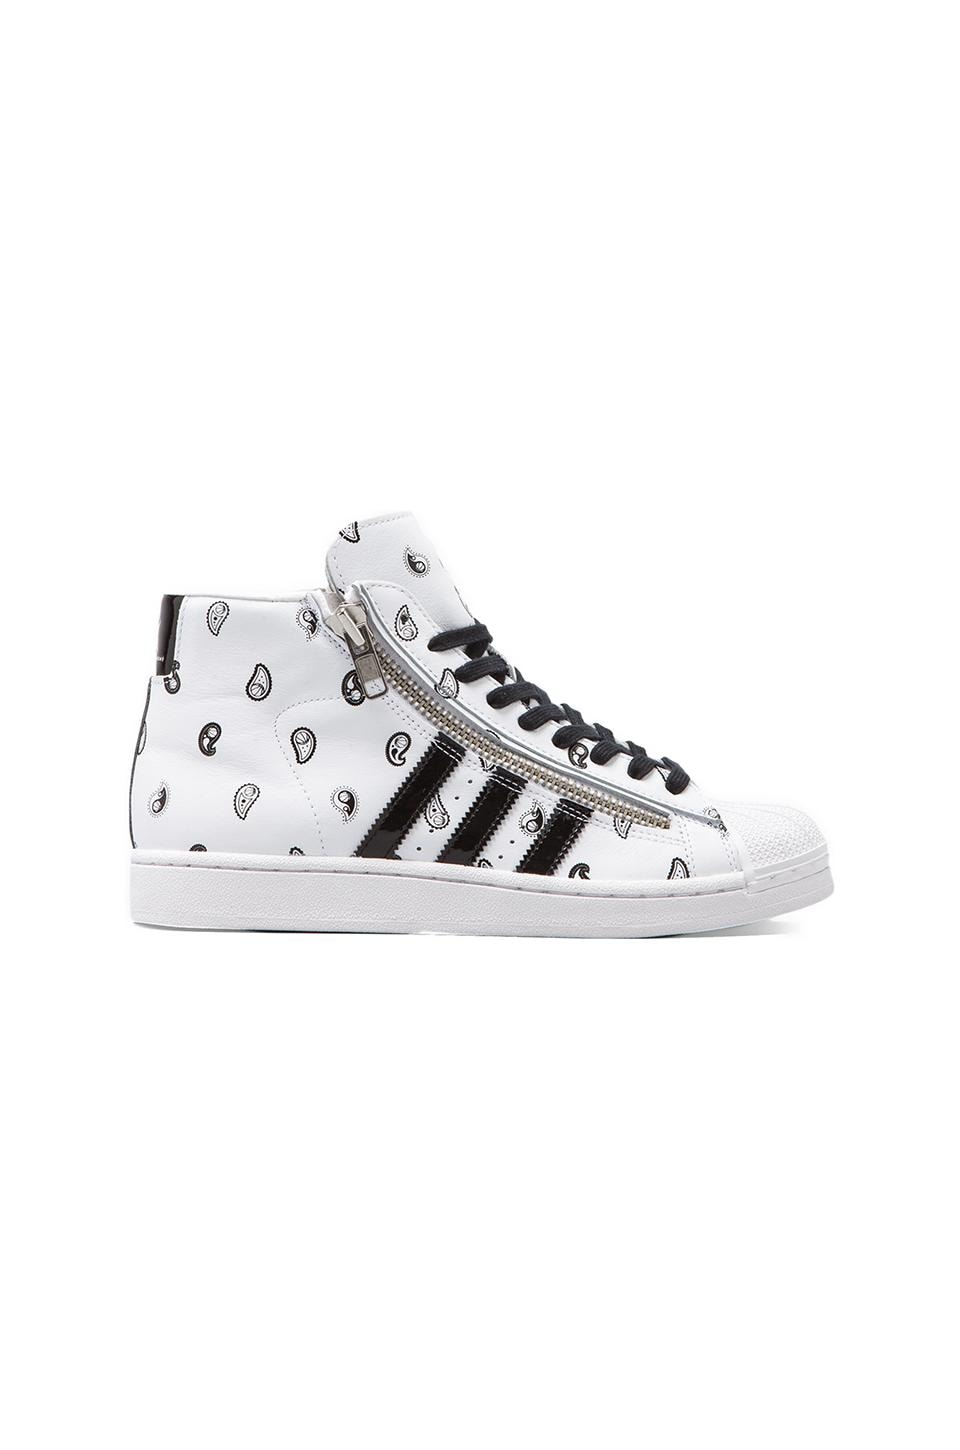 adidas Originals x Opening Ceremony Pro Model Bball in Running White/Black/Running White